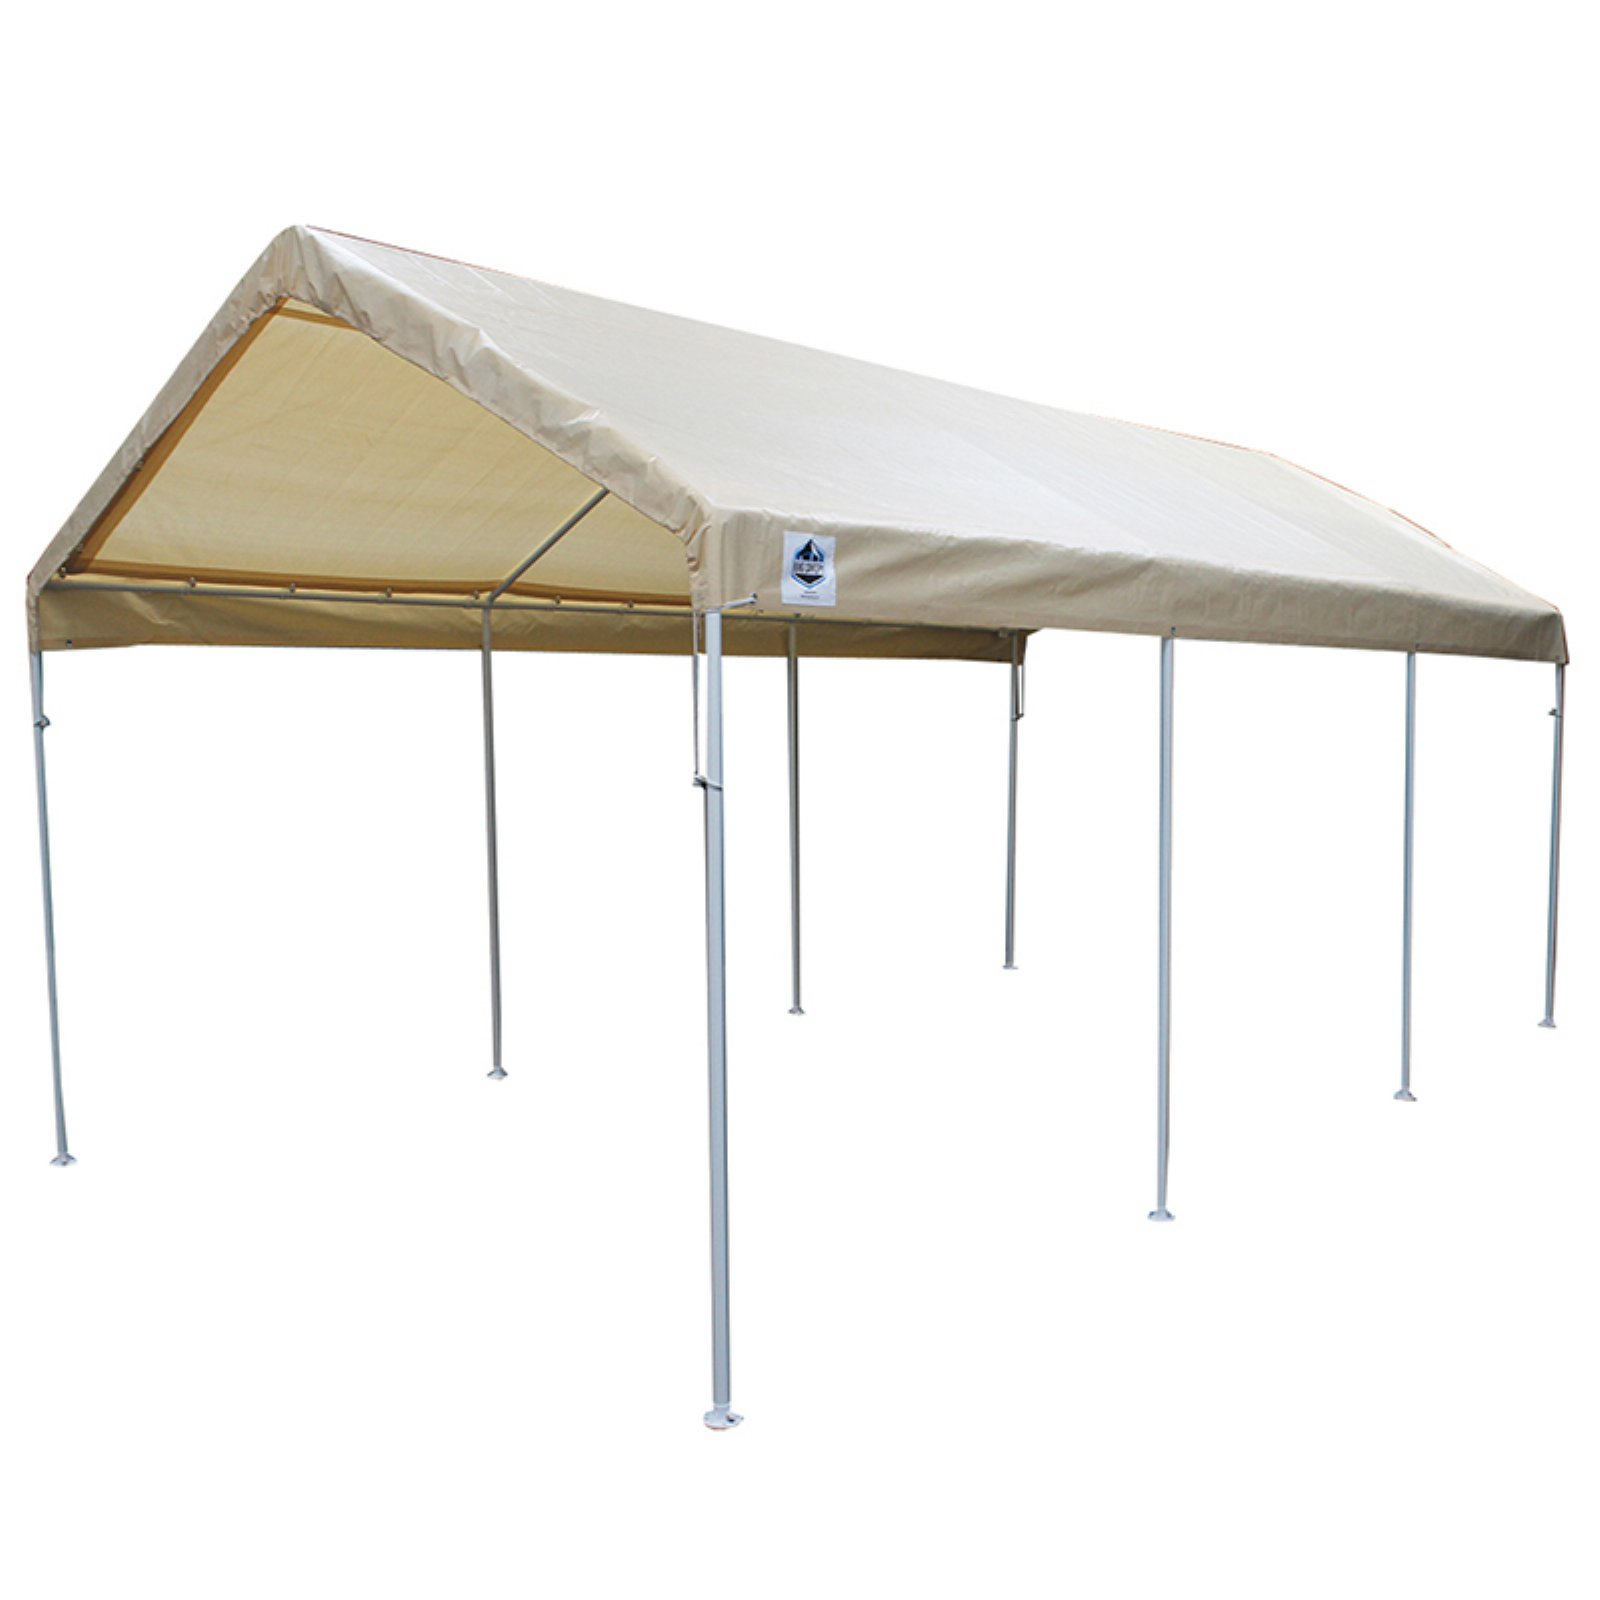 King Canopy Universal Canopy by PIC America Ltd